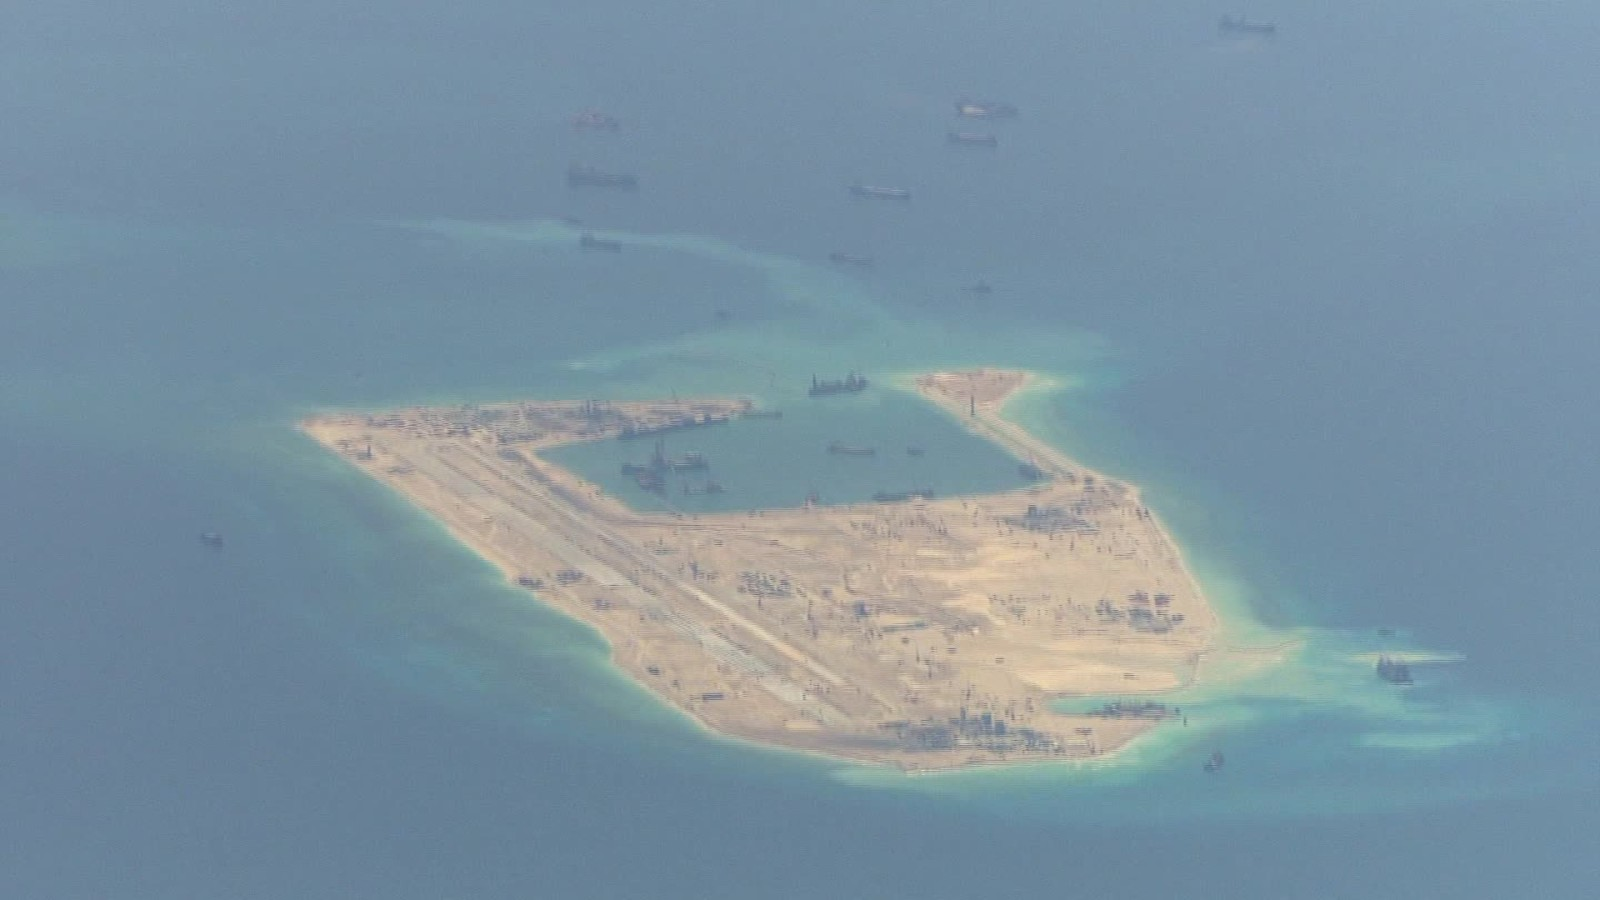 south china sea military bases growth revealed in images cnnpolitics